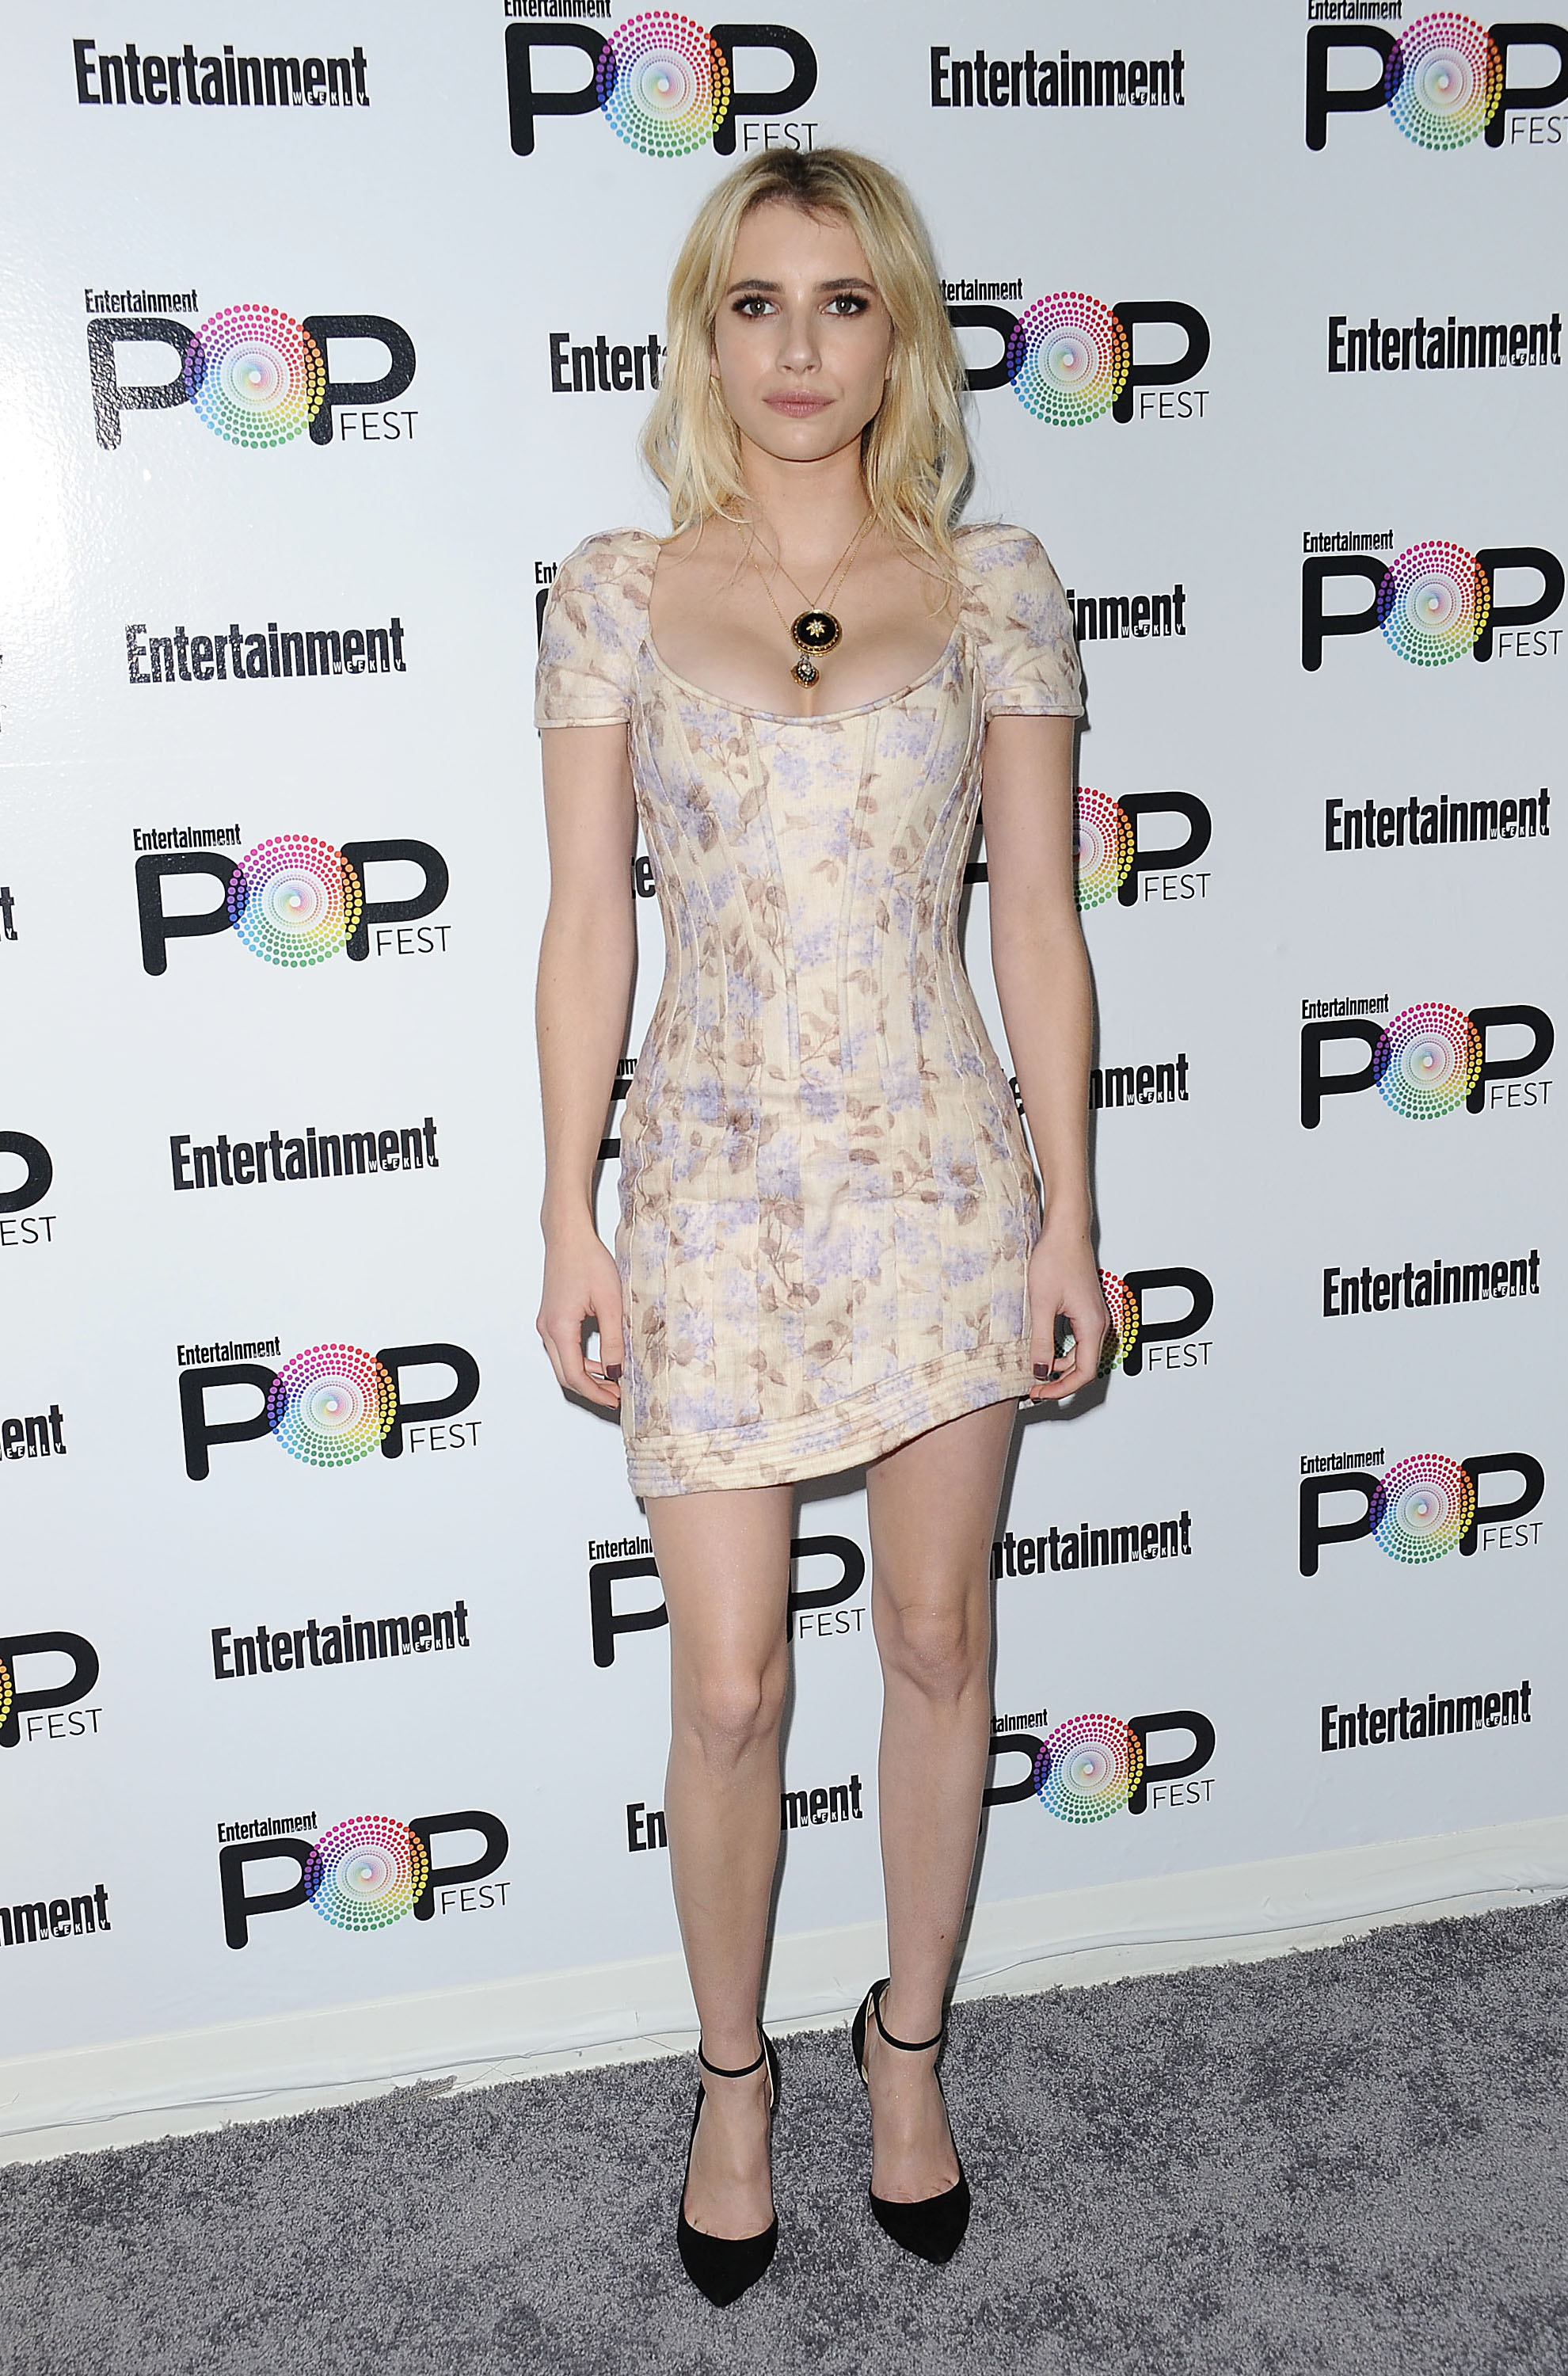 All you need to know about Emma Roberts - a brief bio - Popdust